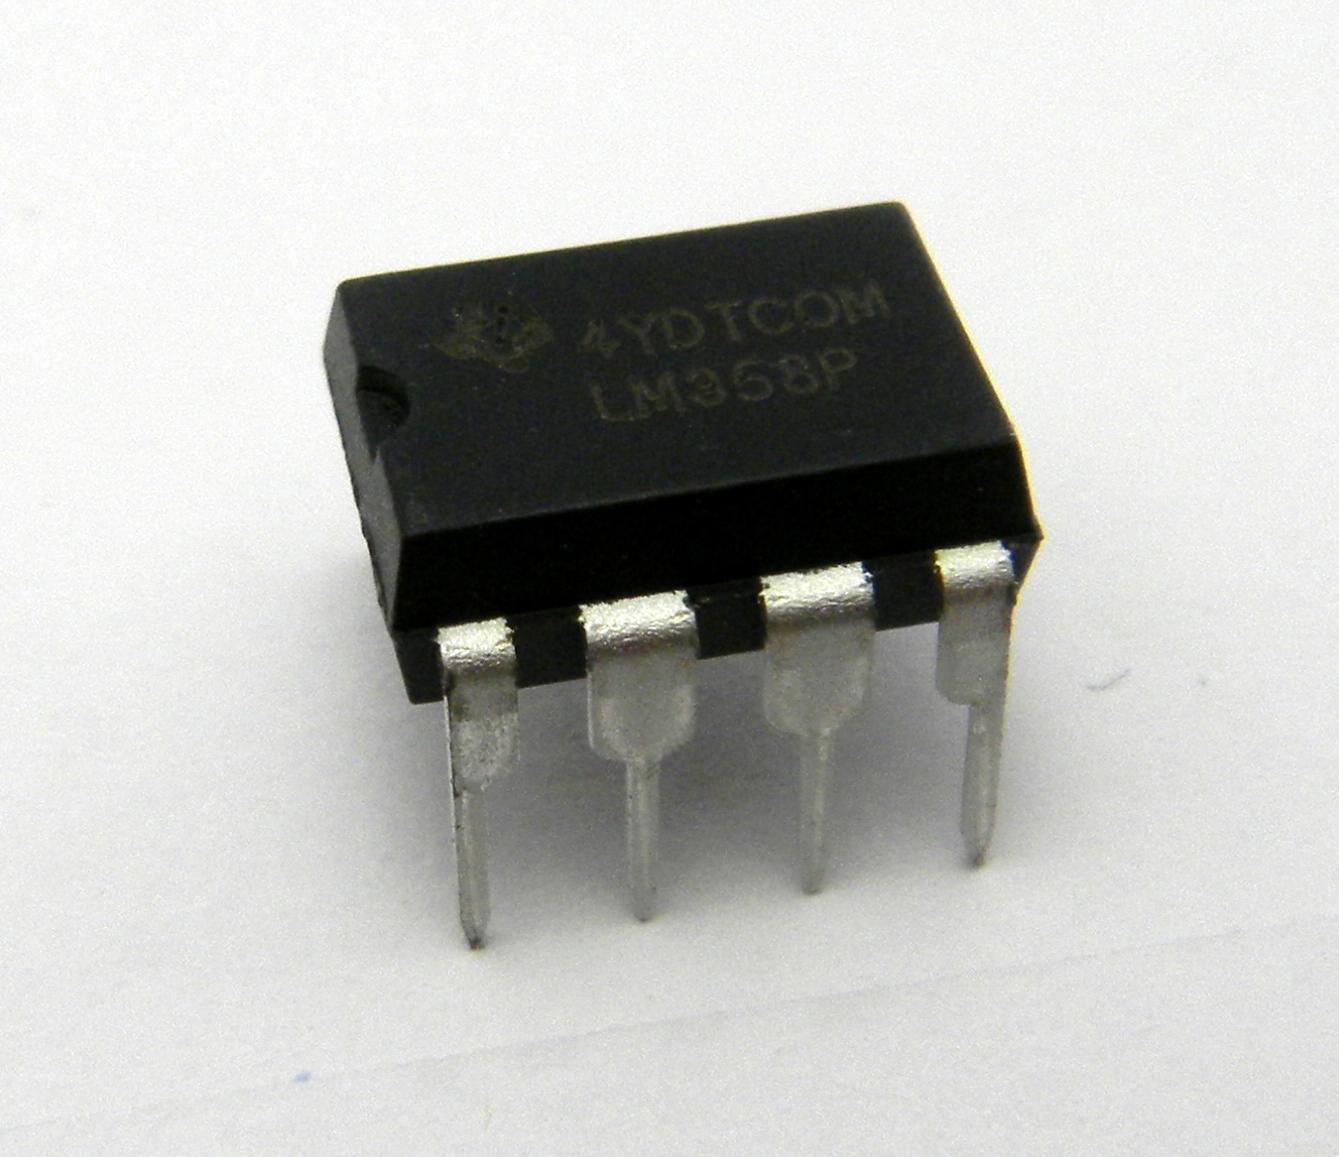 10 x Texas Instruments LM358P - Free Shipping - New and Authentic - USA Seller